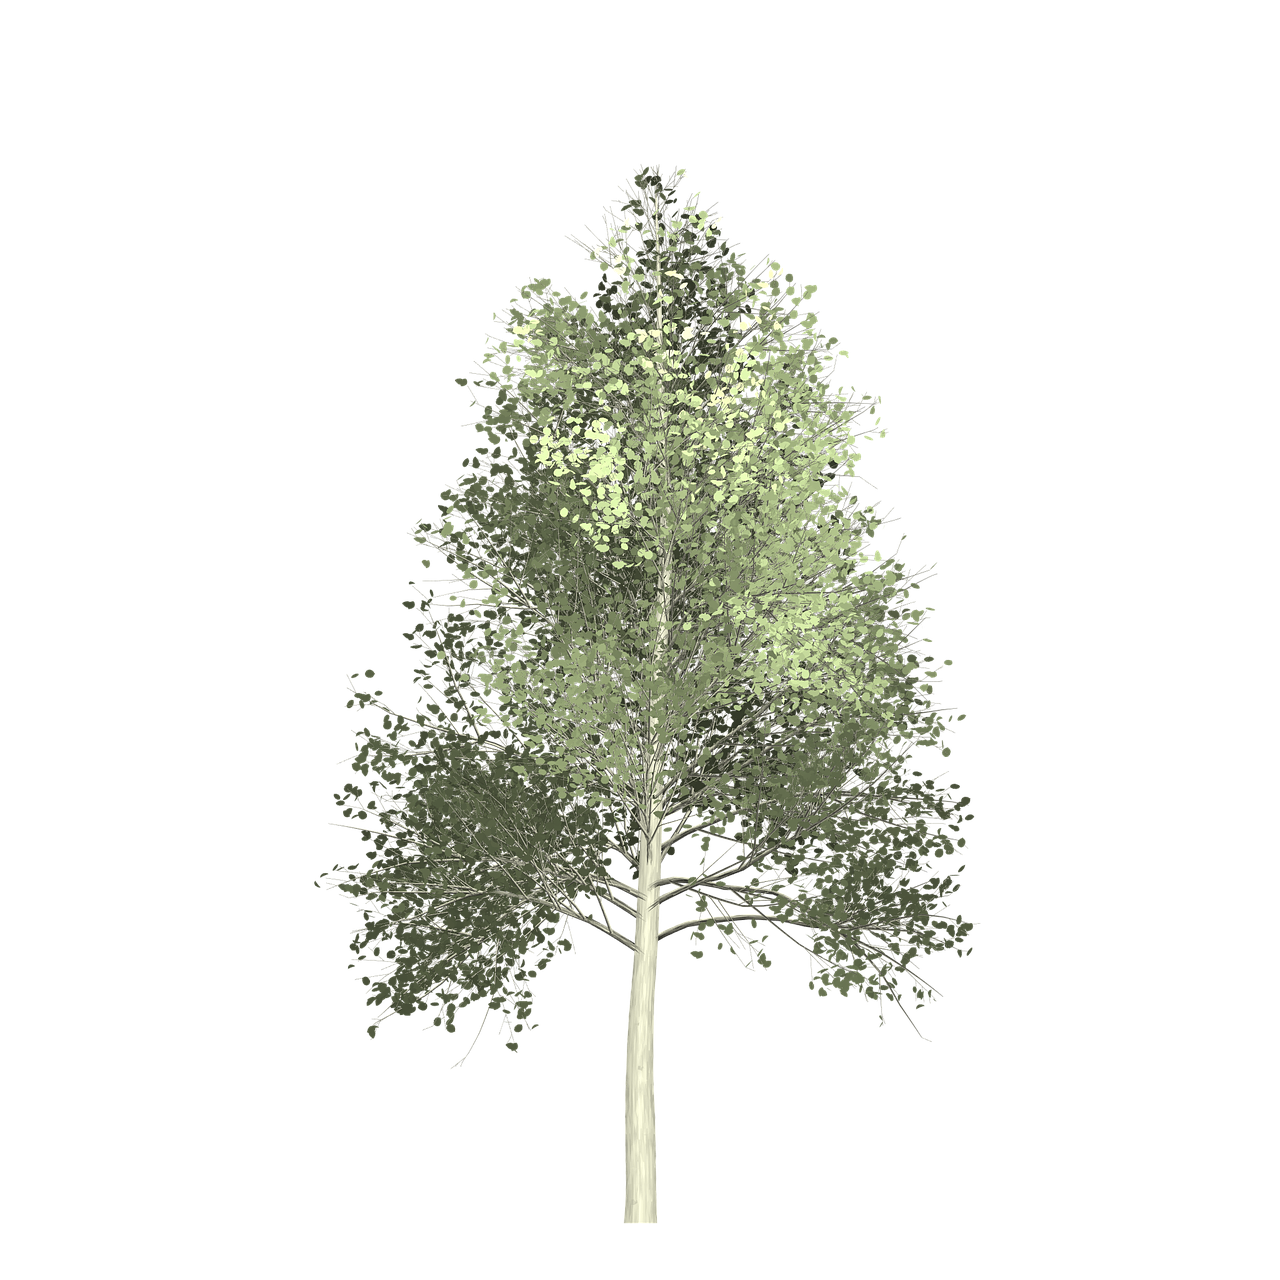 Forest Aspen Tree Painted Tree Nature Green Forest Aspen Tree Paintedtree Nature Green Aspen Trees Autumn Trees Tree Painting